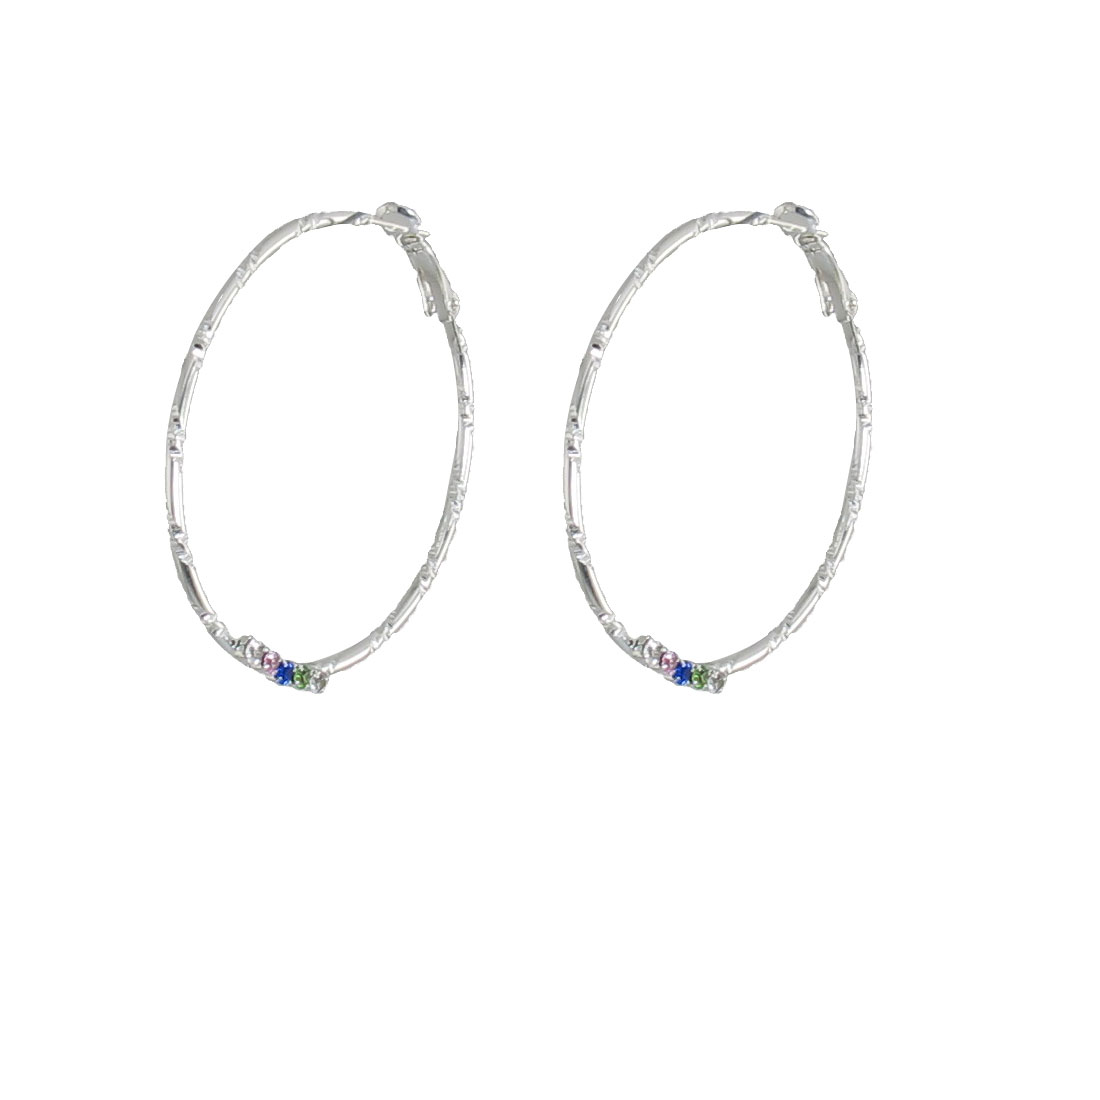 Pair Rhinestone Inlaid Silver Tone Spring Hoop Earrings for Woman